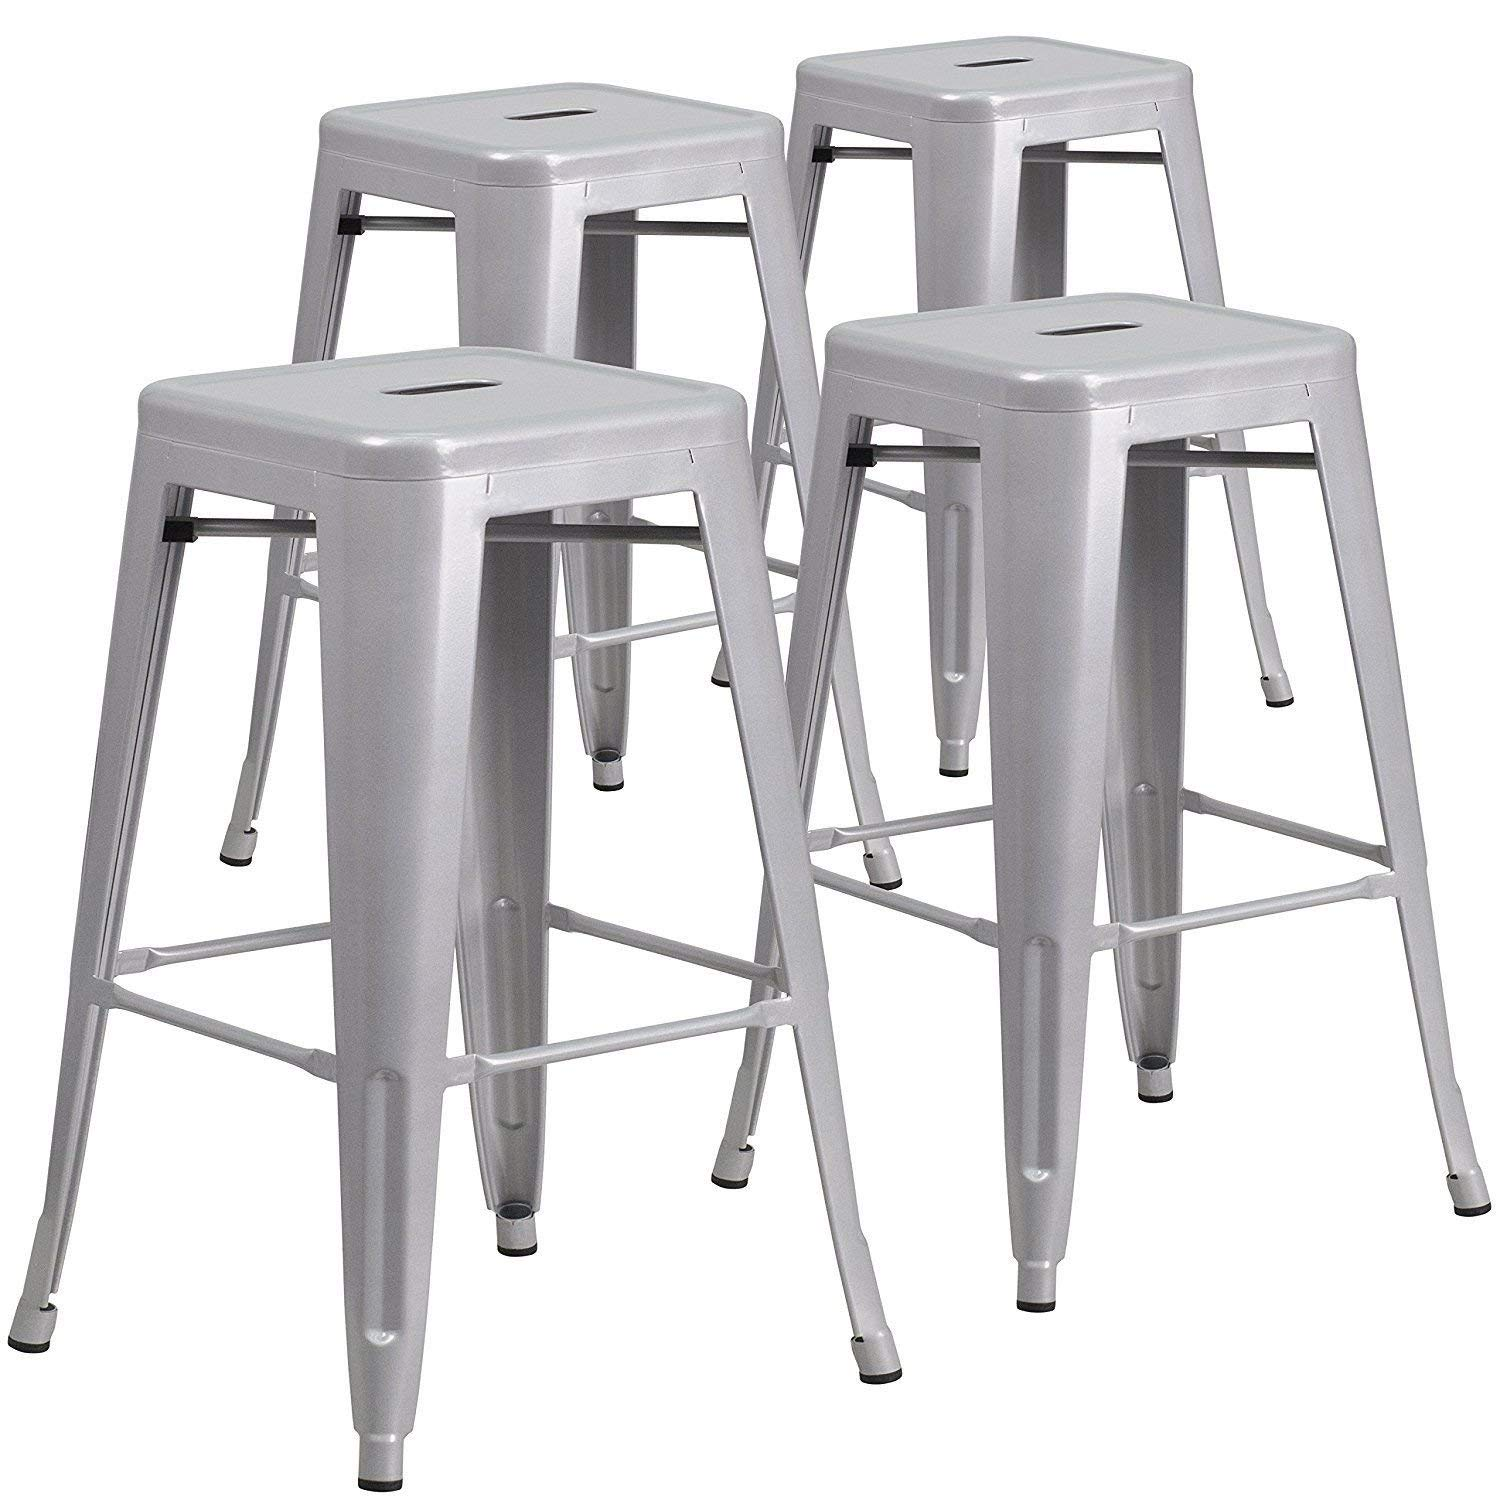 "Globe House Products GHP 4-Pcs 330-Lbs Capacity 26""x17""x17"" Silver Backless Counter Height Bar Stools"